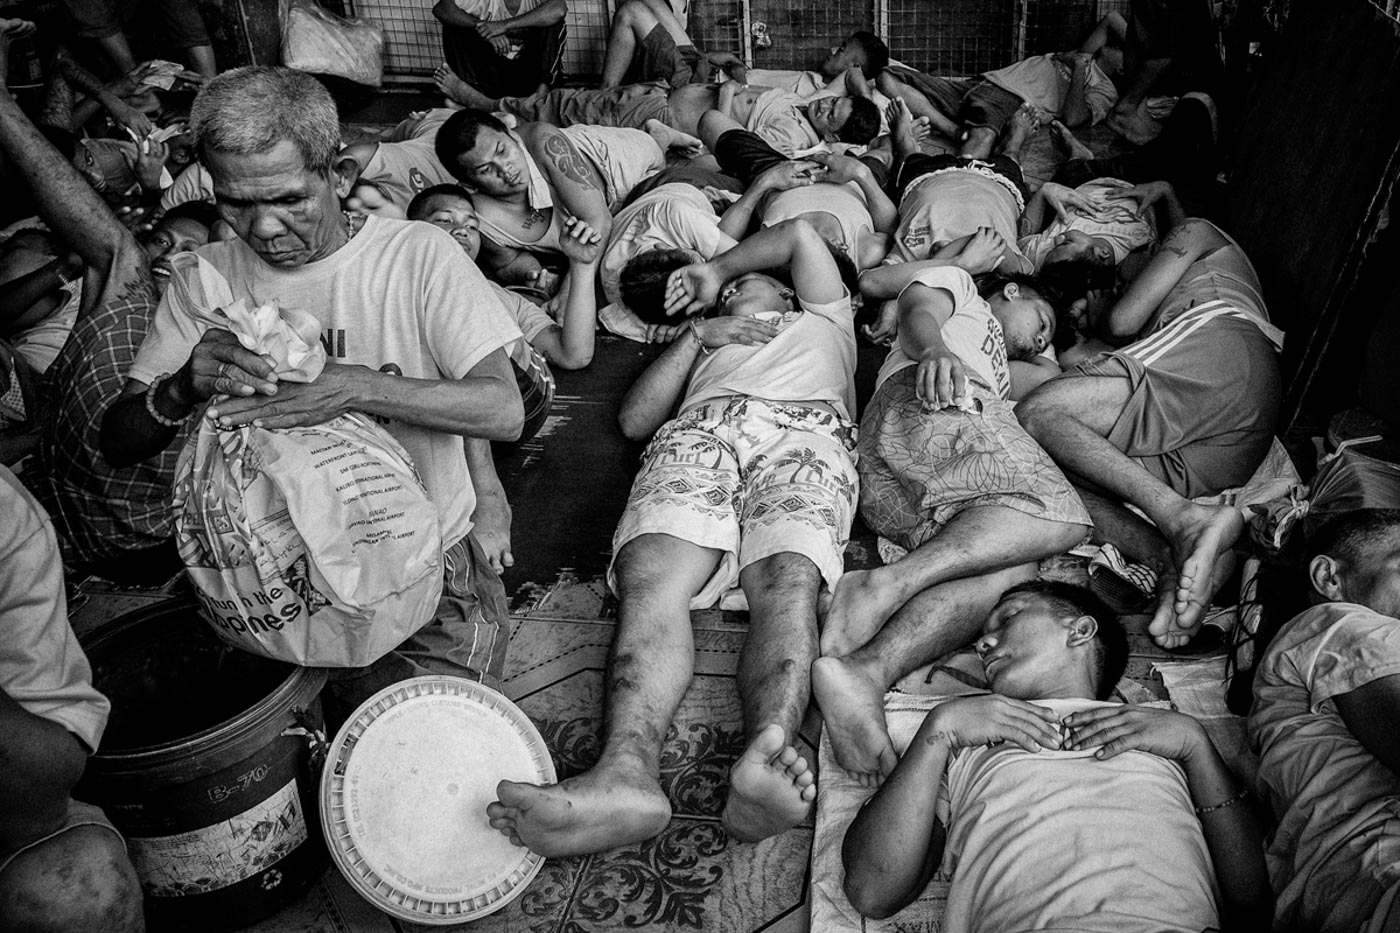 SLEEPING SCHEDULE. Inmates take turns sleeping in an overcrowded jail cell. Photo by Rick Rocamora